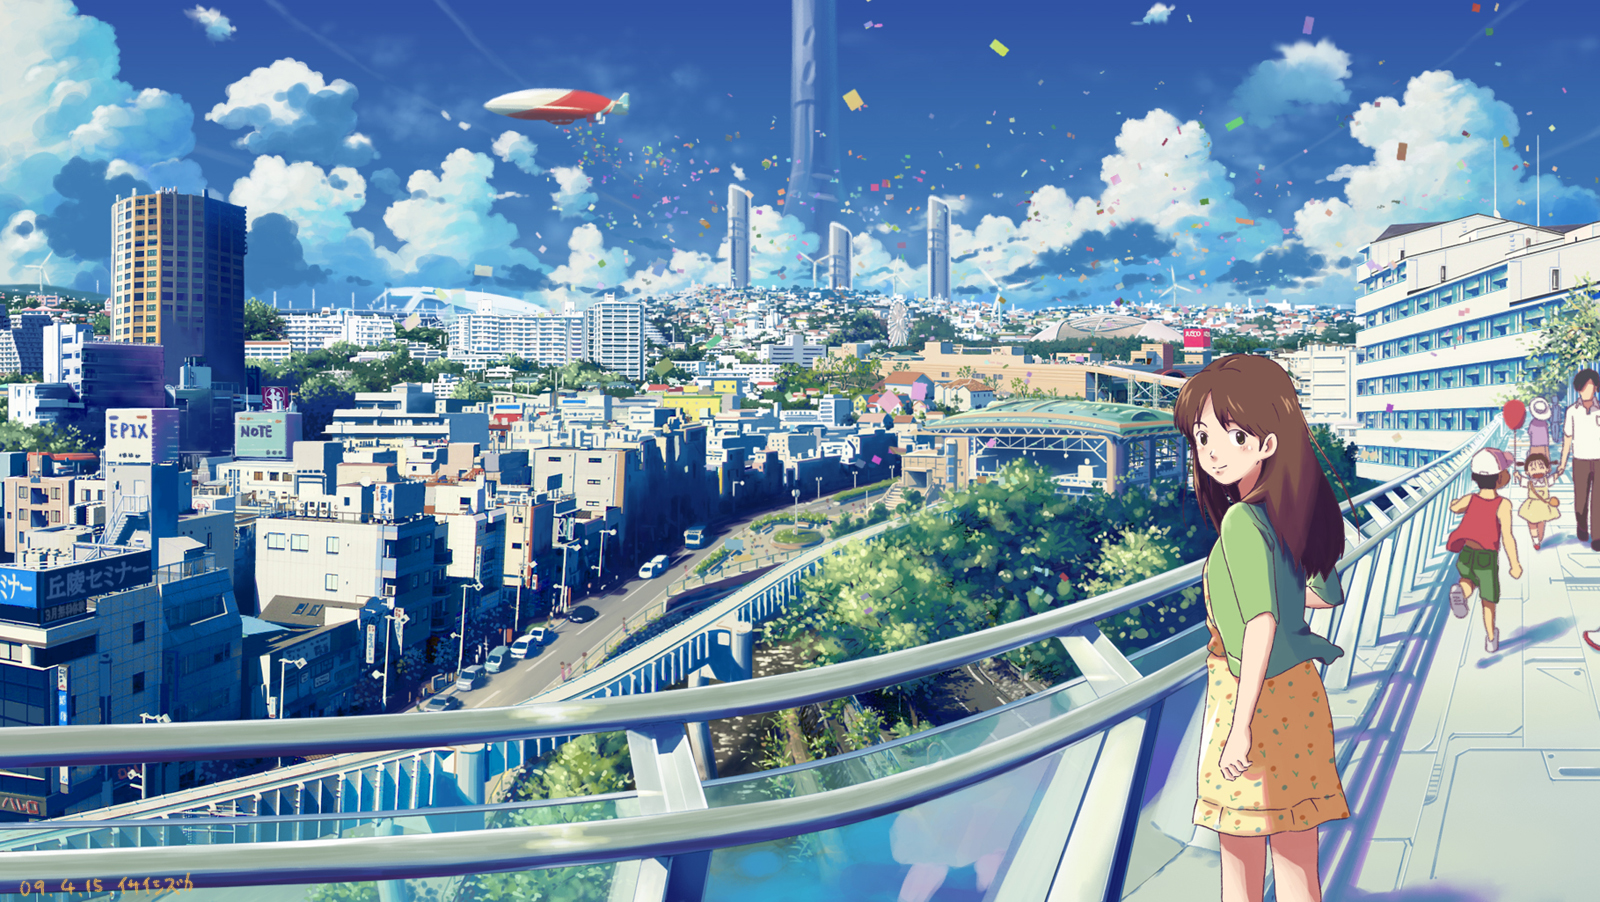 Anime Scenery Forest Displaying 13> Imag...